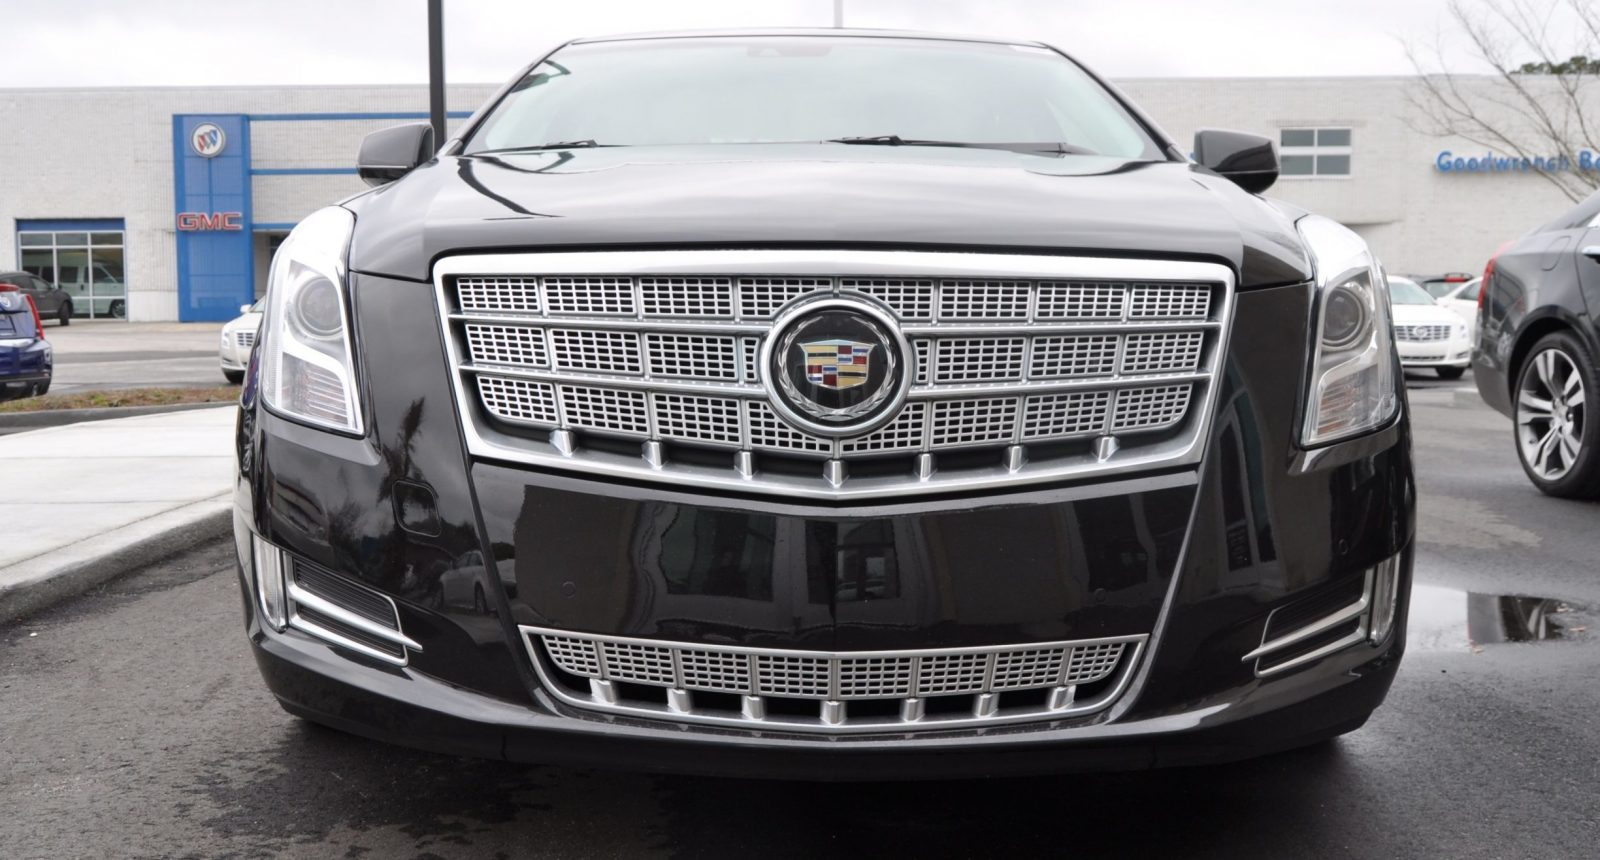 2014 Cadillac XTS4 Platinum Vsport -- First Drive Video and Photos 10